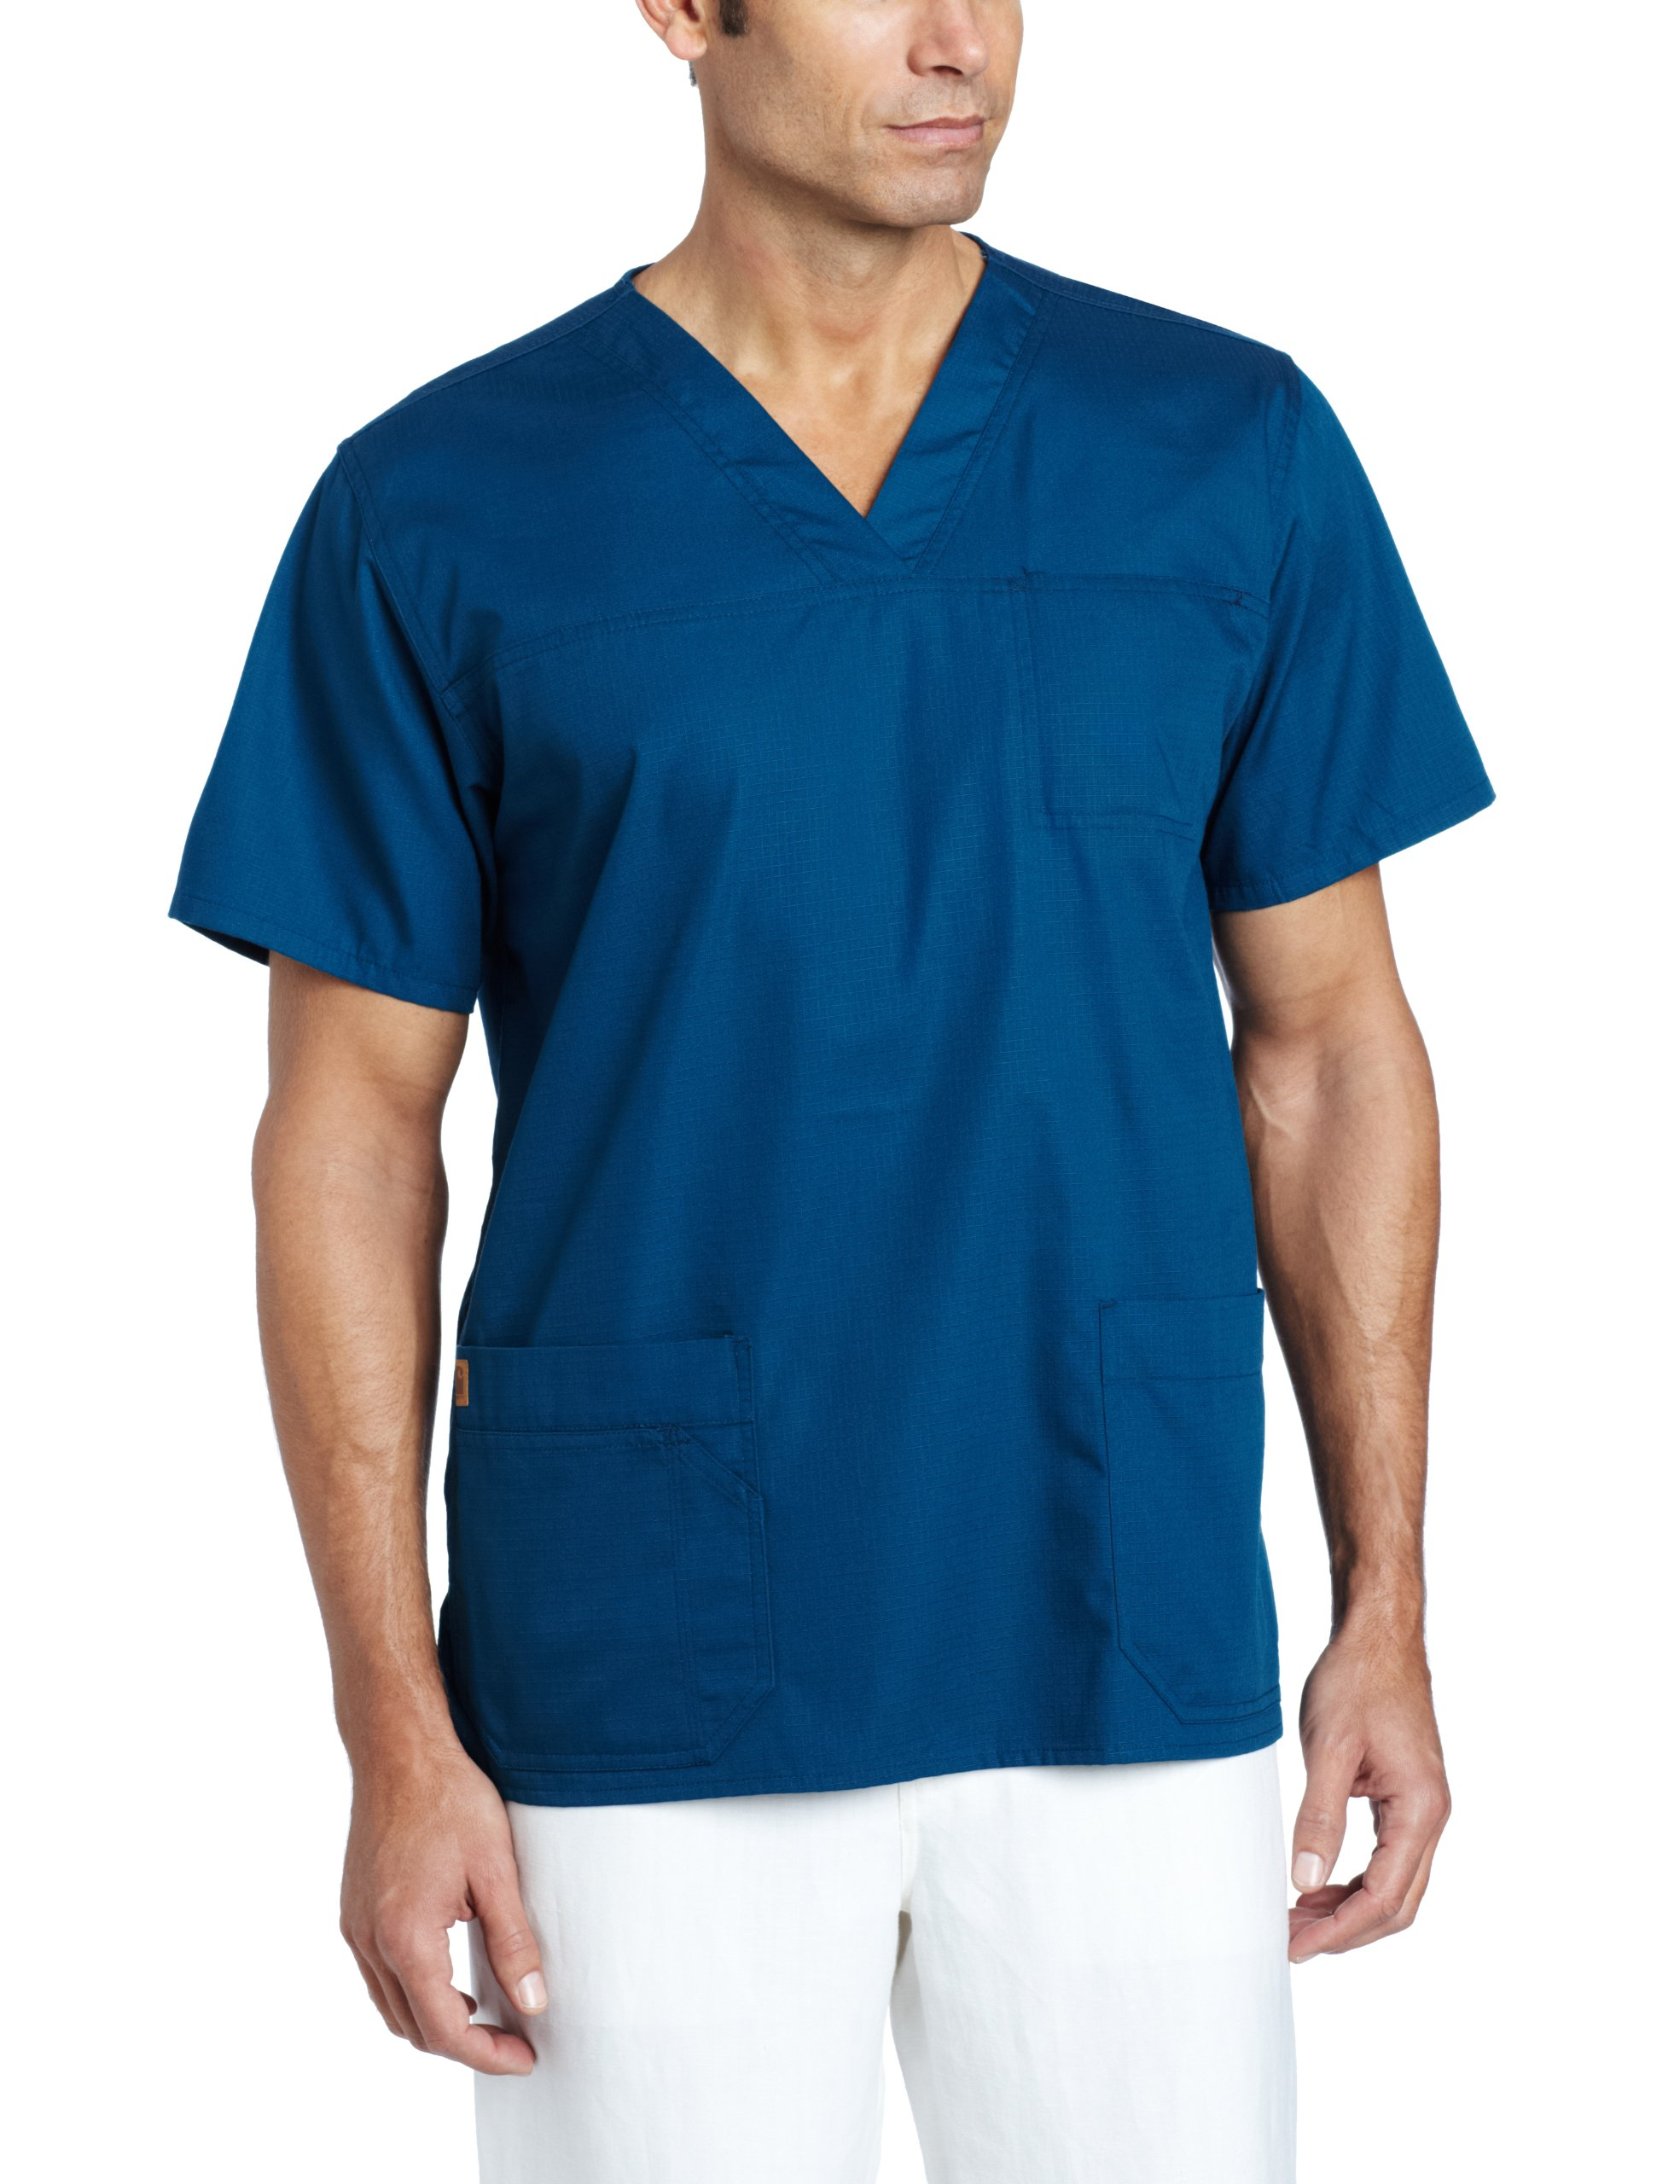 Carhartt Men's Ripstop Multi Pocket Scrub Top, Caribbean, X-Large